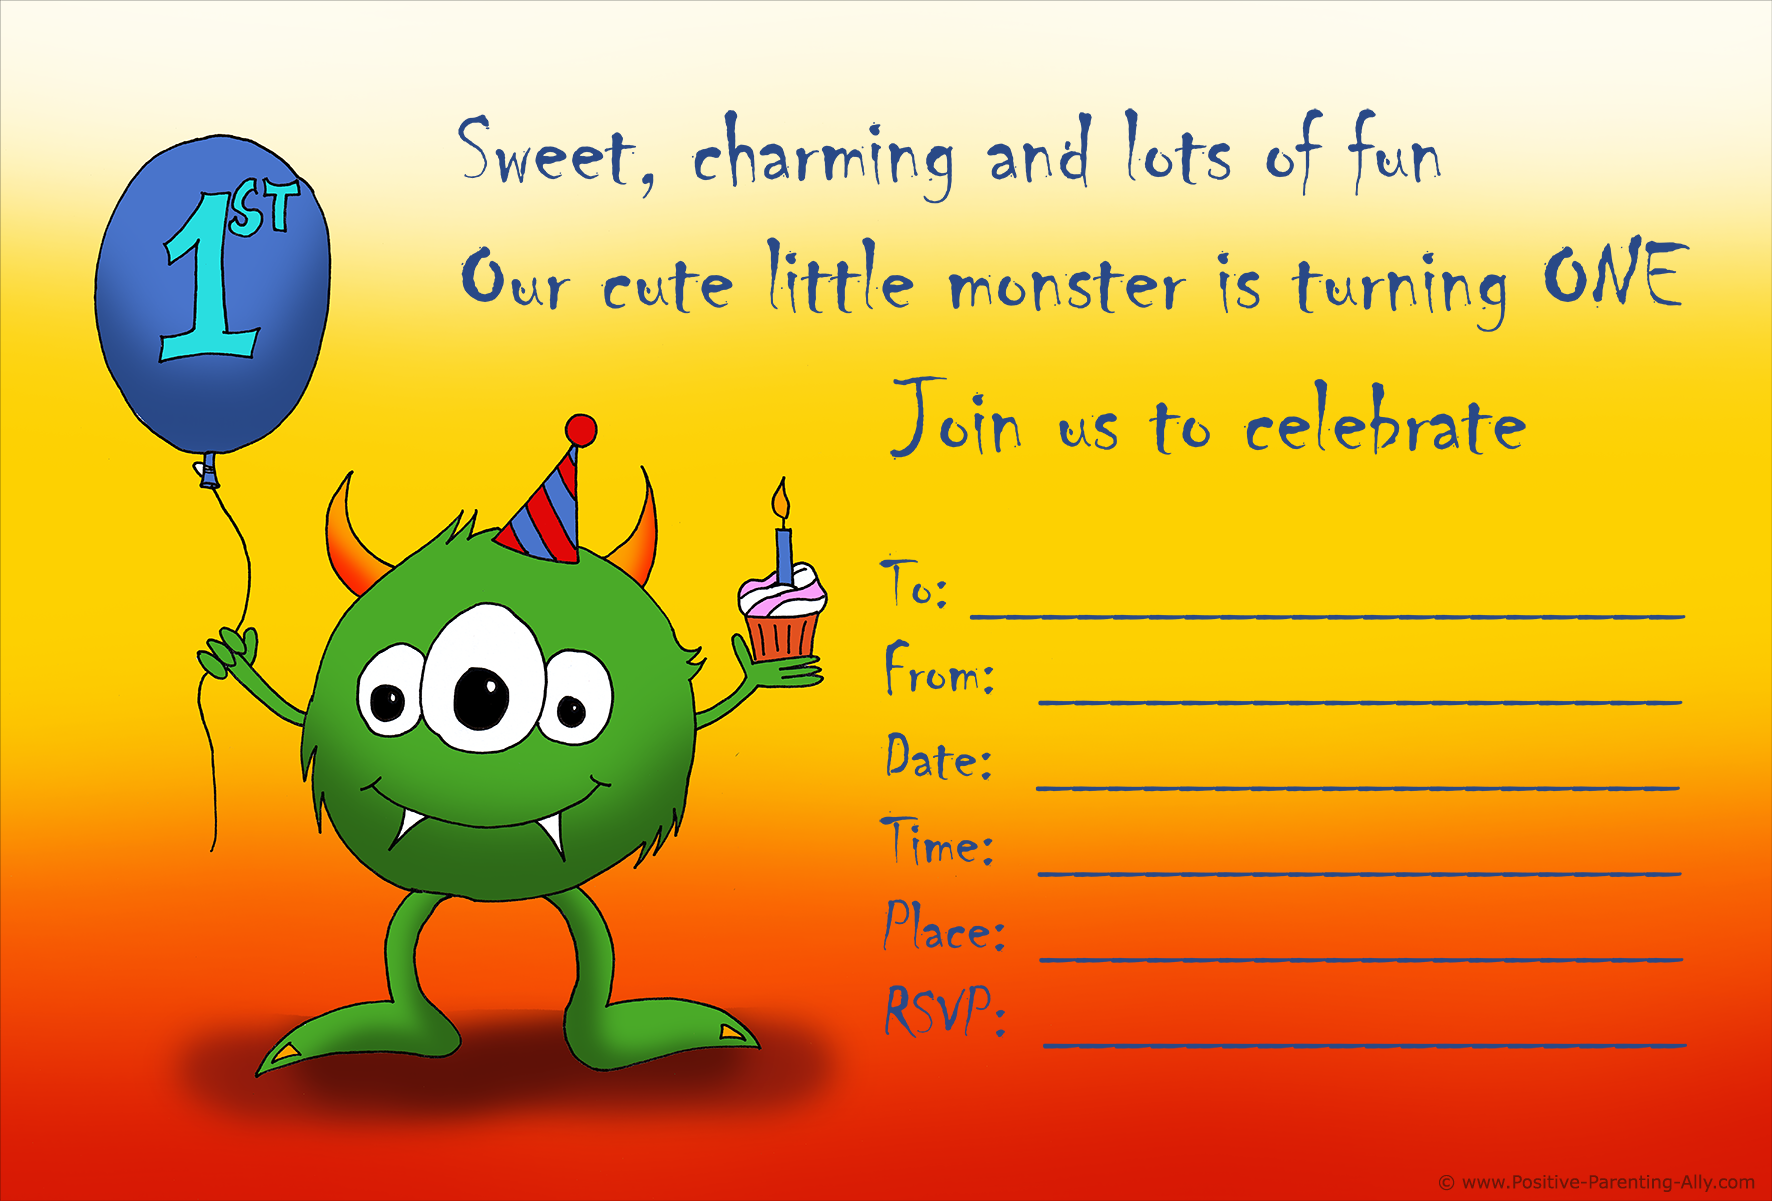 Cute monster birthday invitation, easy to download and print.